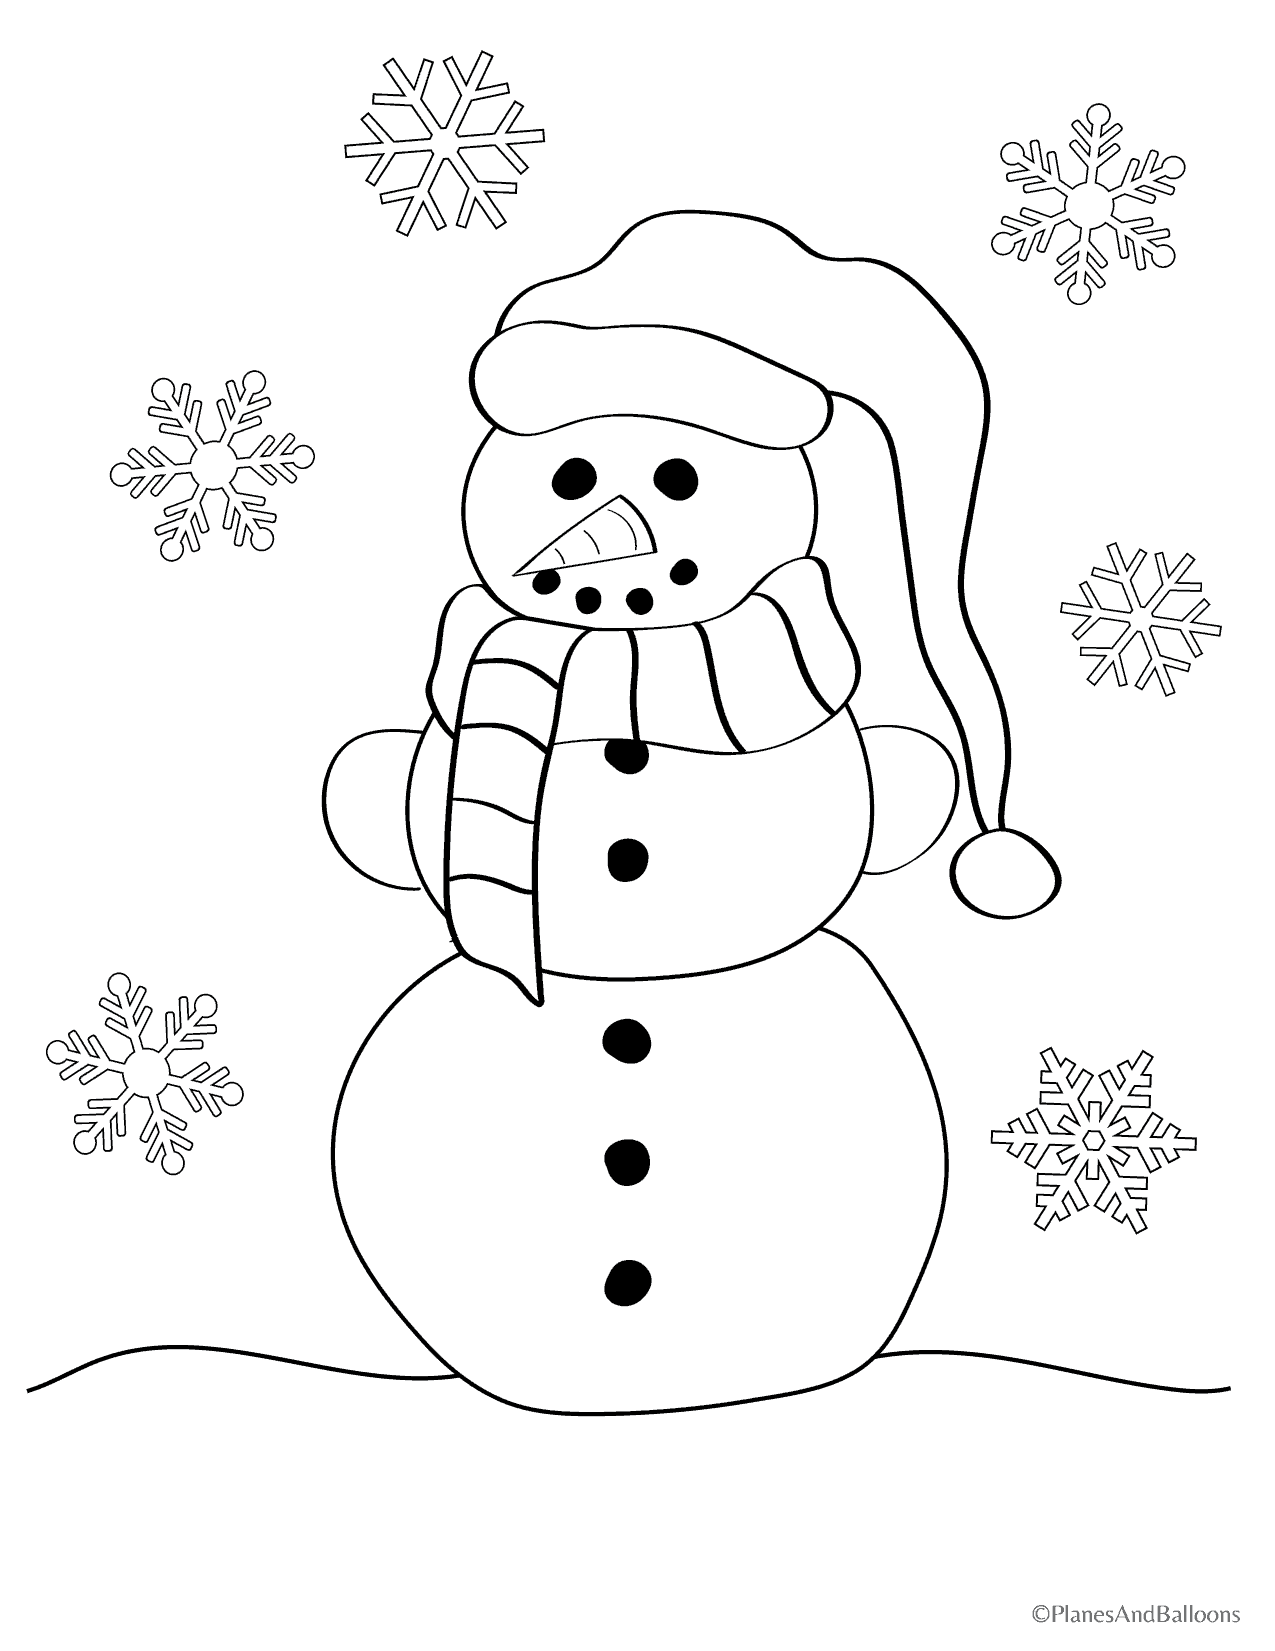 Snowman Worksheets For Kindergarten